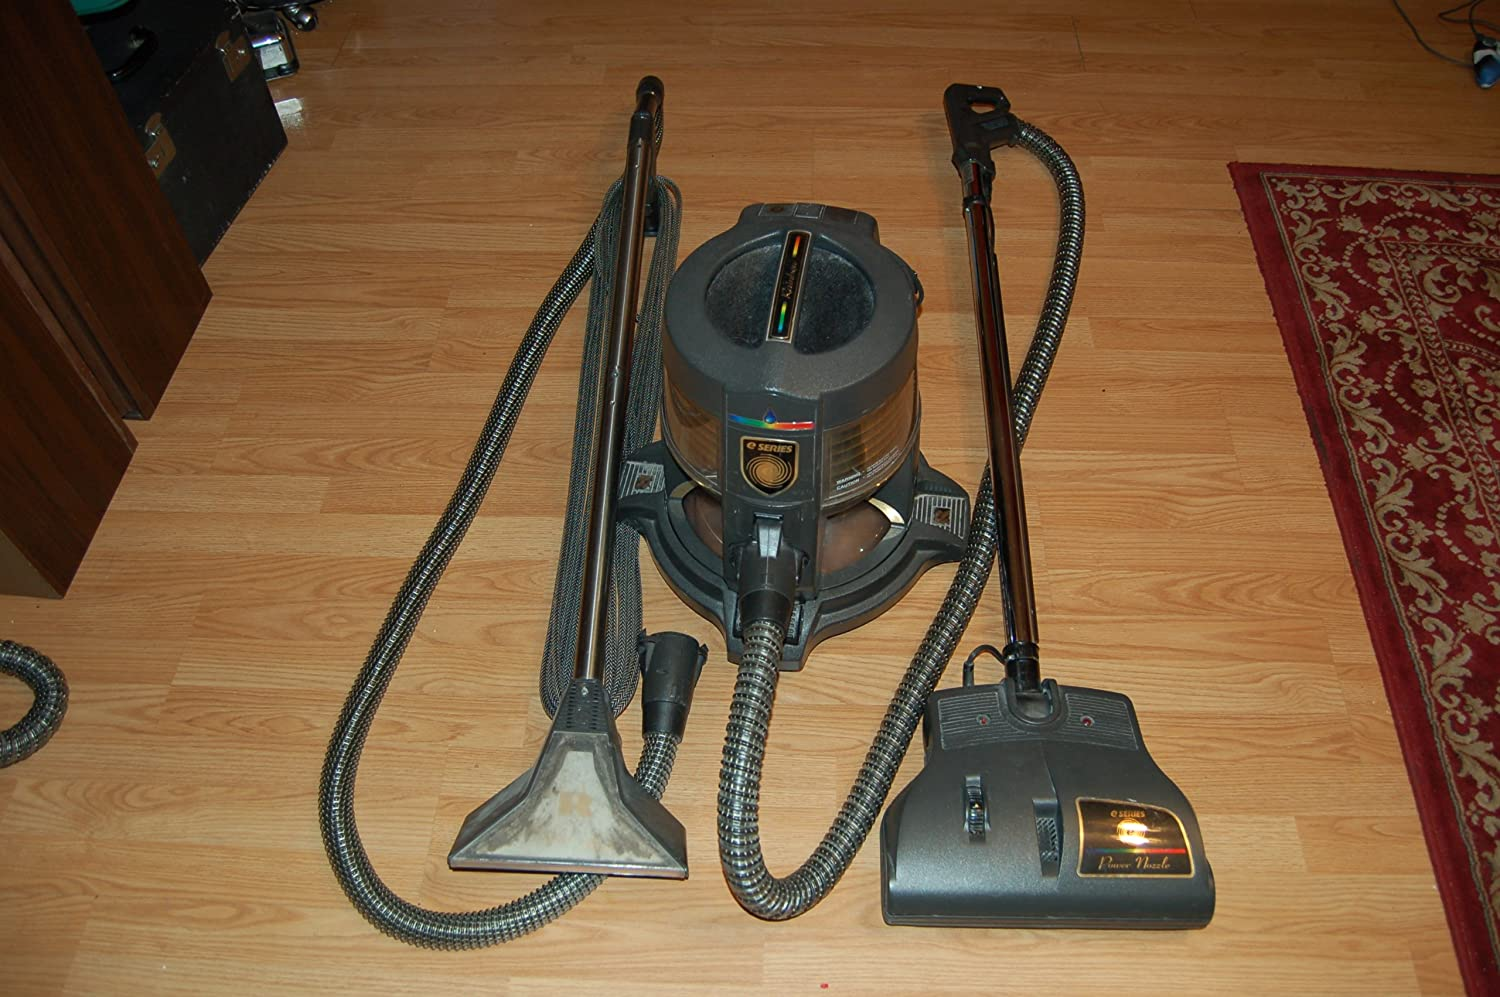 Electric Floor Cleaners That Can Vacuum Wash And Dry Your